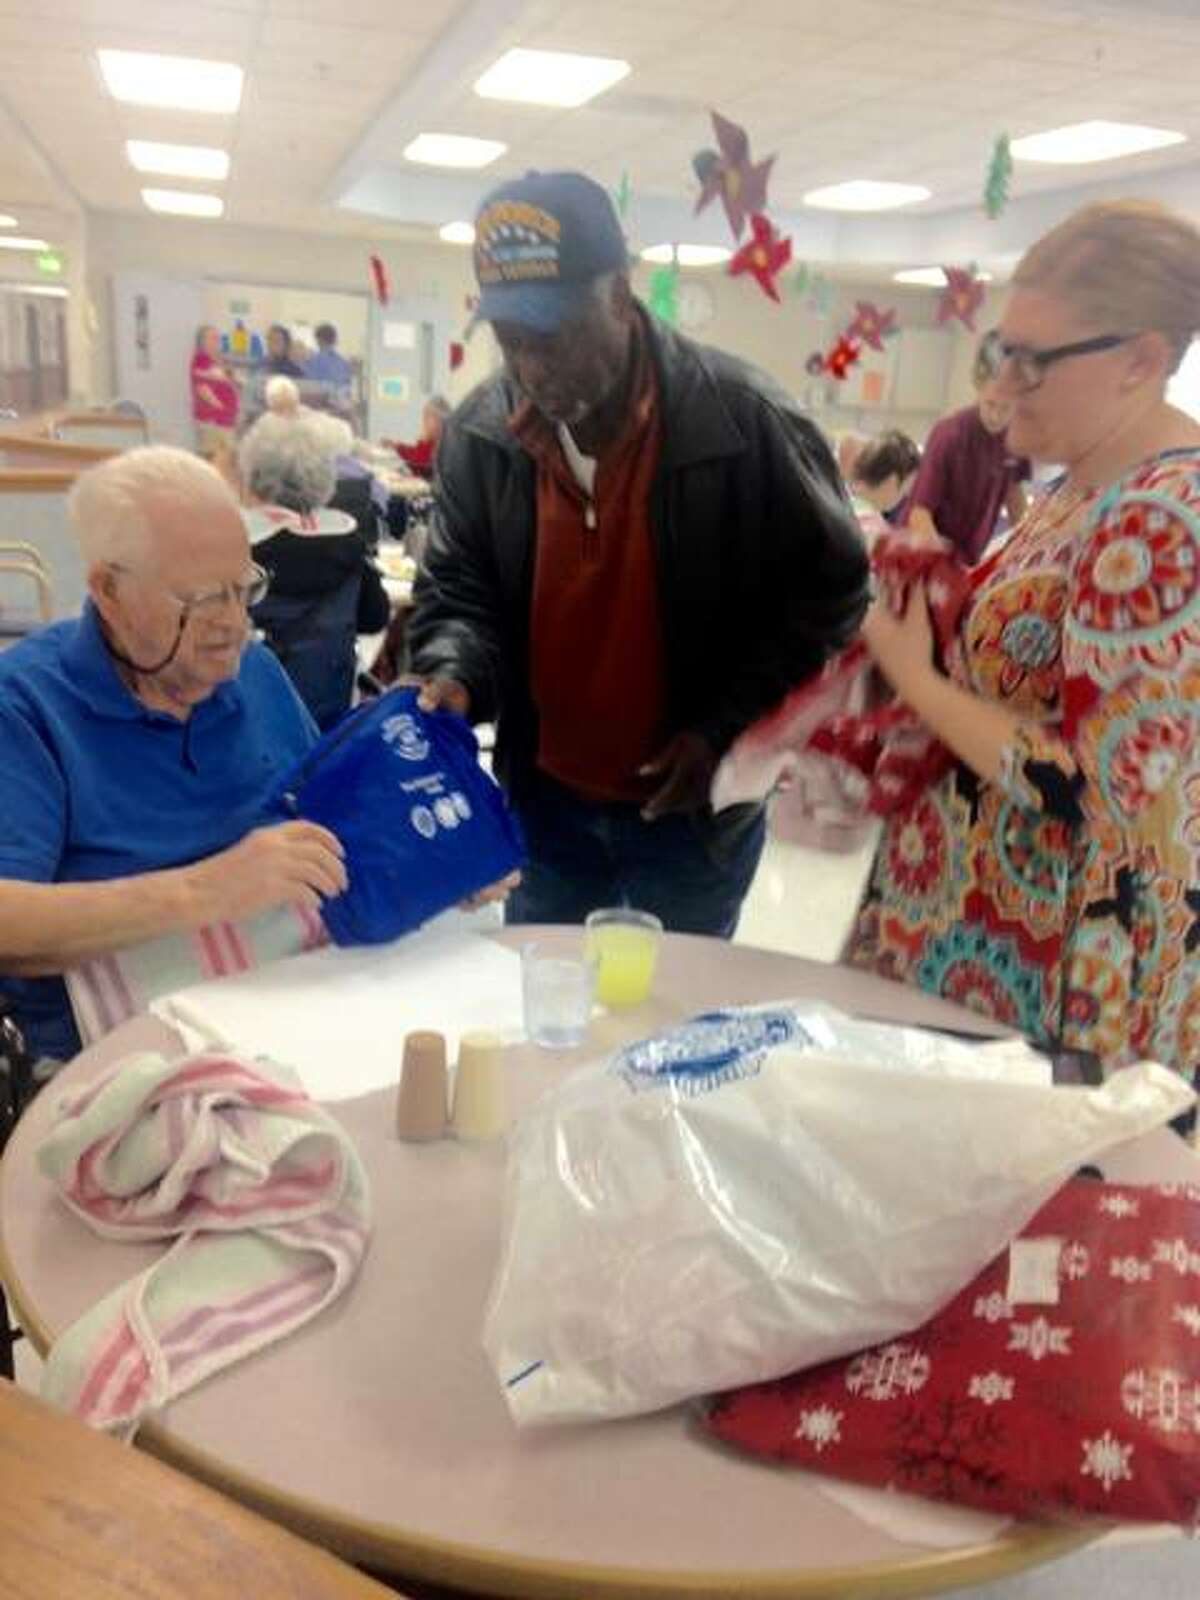 Clifford Barnes, 91, opens a gift containing several items in a bag from Joe Brice, commander of Allen Bevenue American Legion Post 354 of Alton, at Rosewood Care Center. Brice brought Christmas gifts to 18 veterans at the long-term care facility, and 100 presents overall to residents of five area nursing homes. Activities Director Frances Allen, right, assisted some of the men in opening their presents. Linda N. Weller/The Telegraph